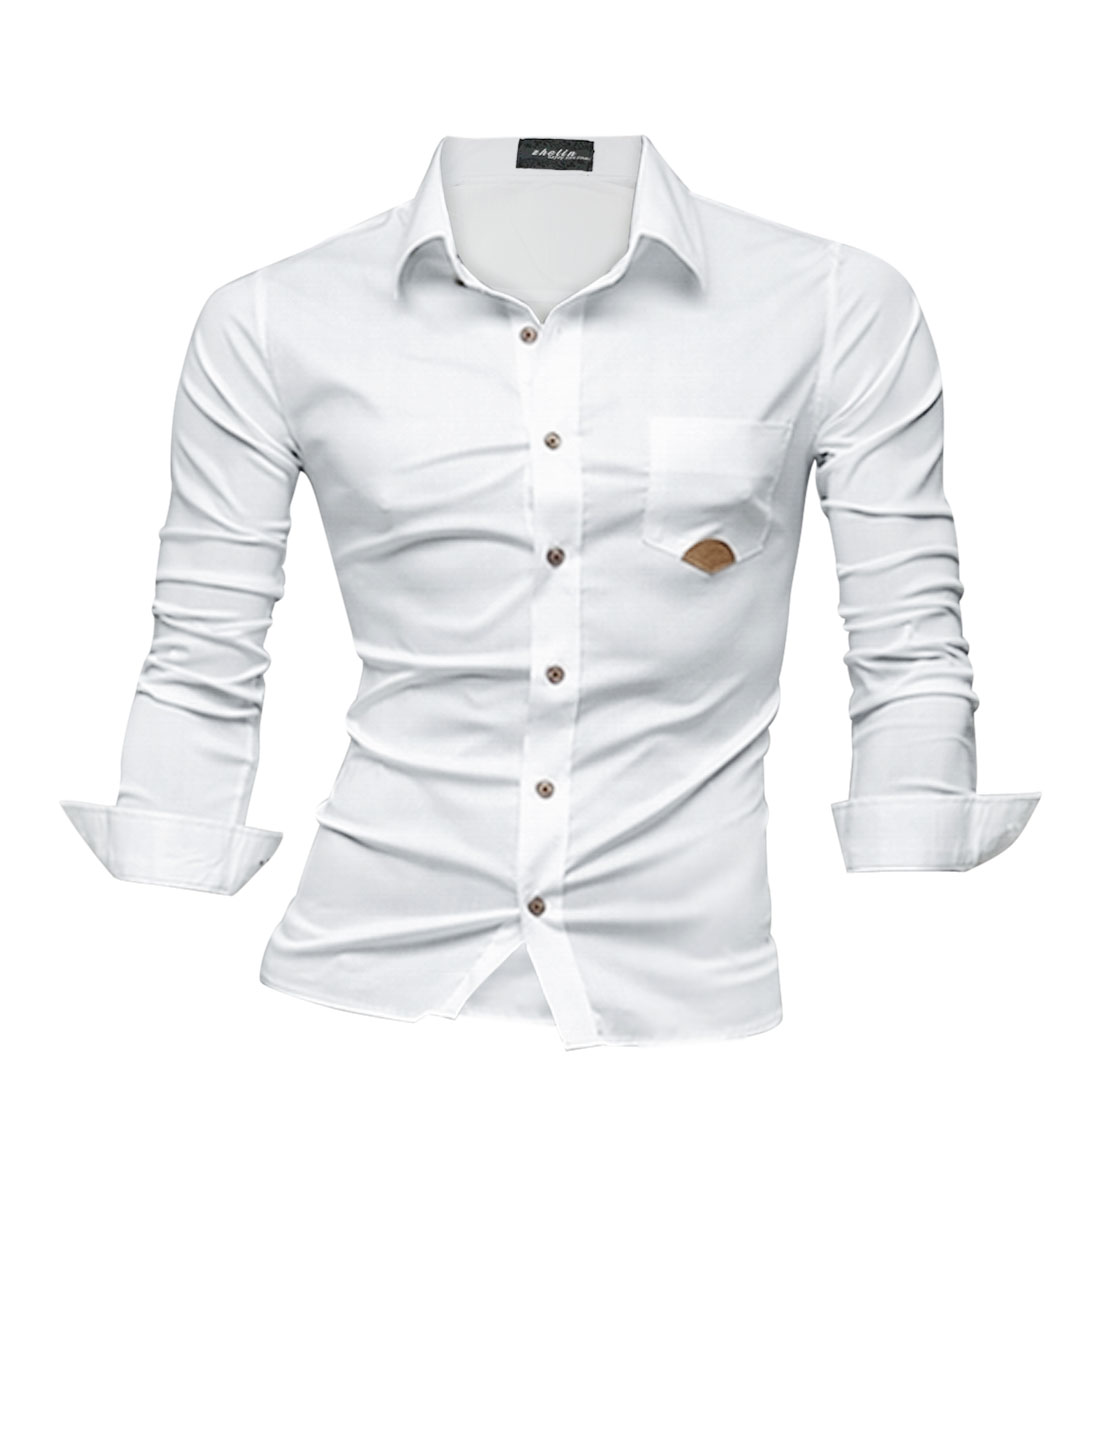 Men Casual Buttons Closed Long Sleeves Chest Pocket Button Down Shirt White M